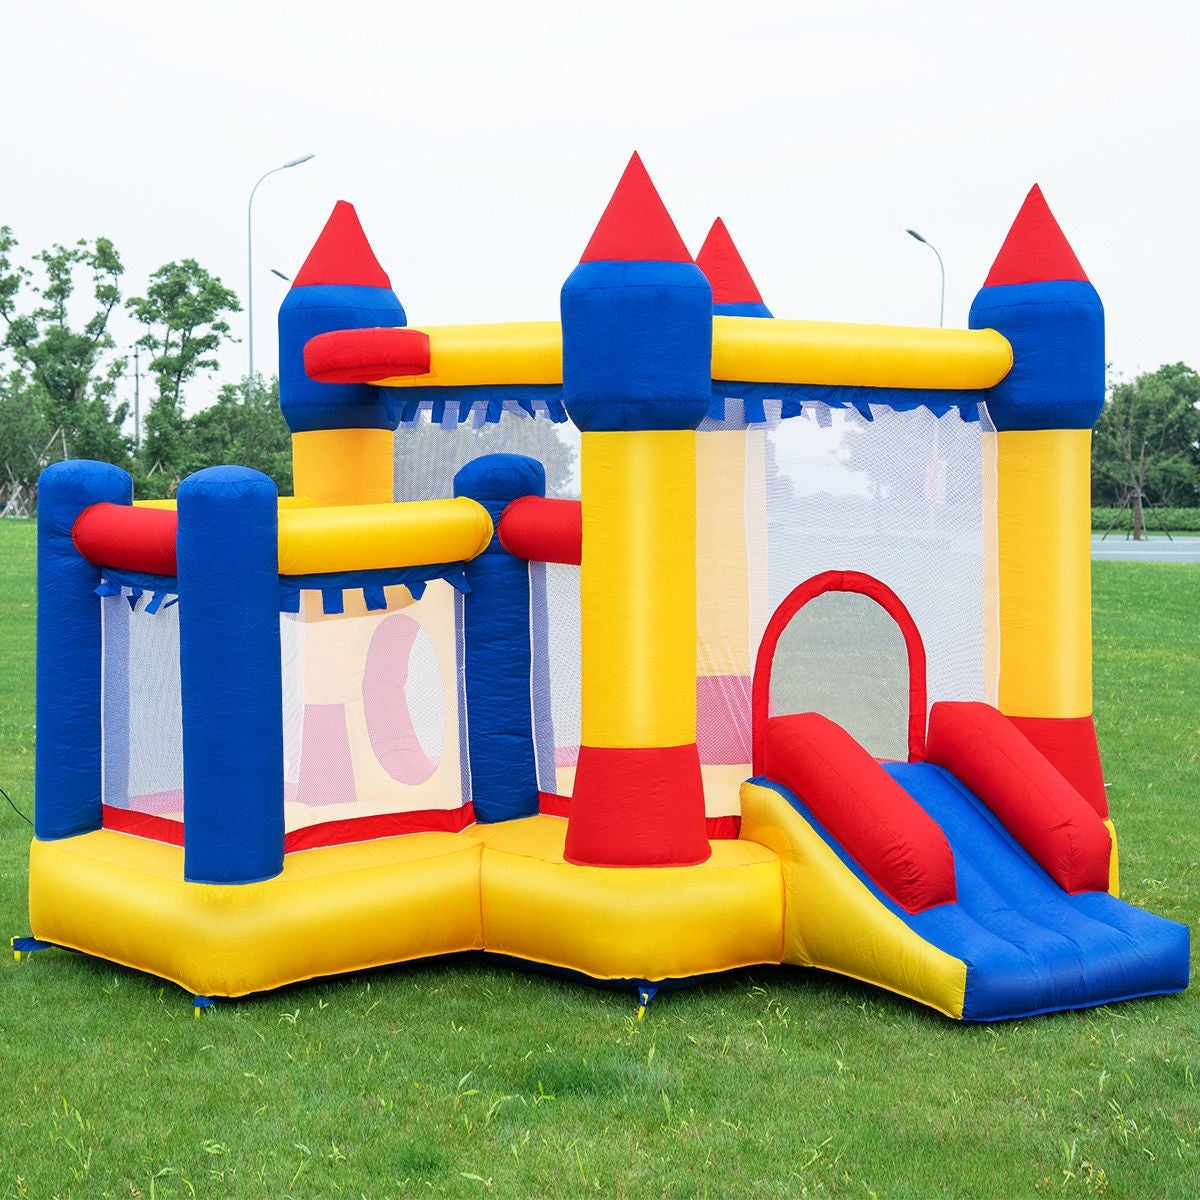 20bab4cd0 Shop Costway Inflatable Bounce House Castle Kids Jumper Slide ...